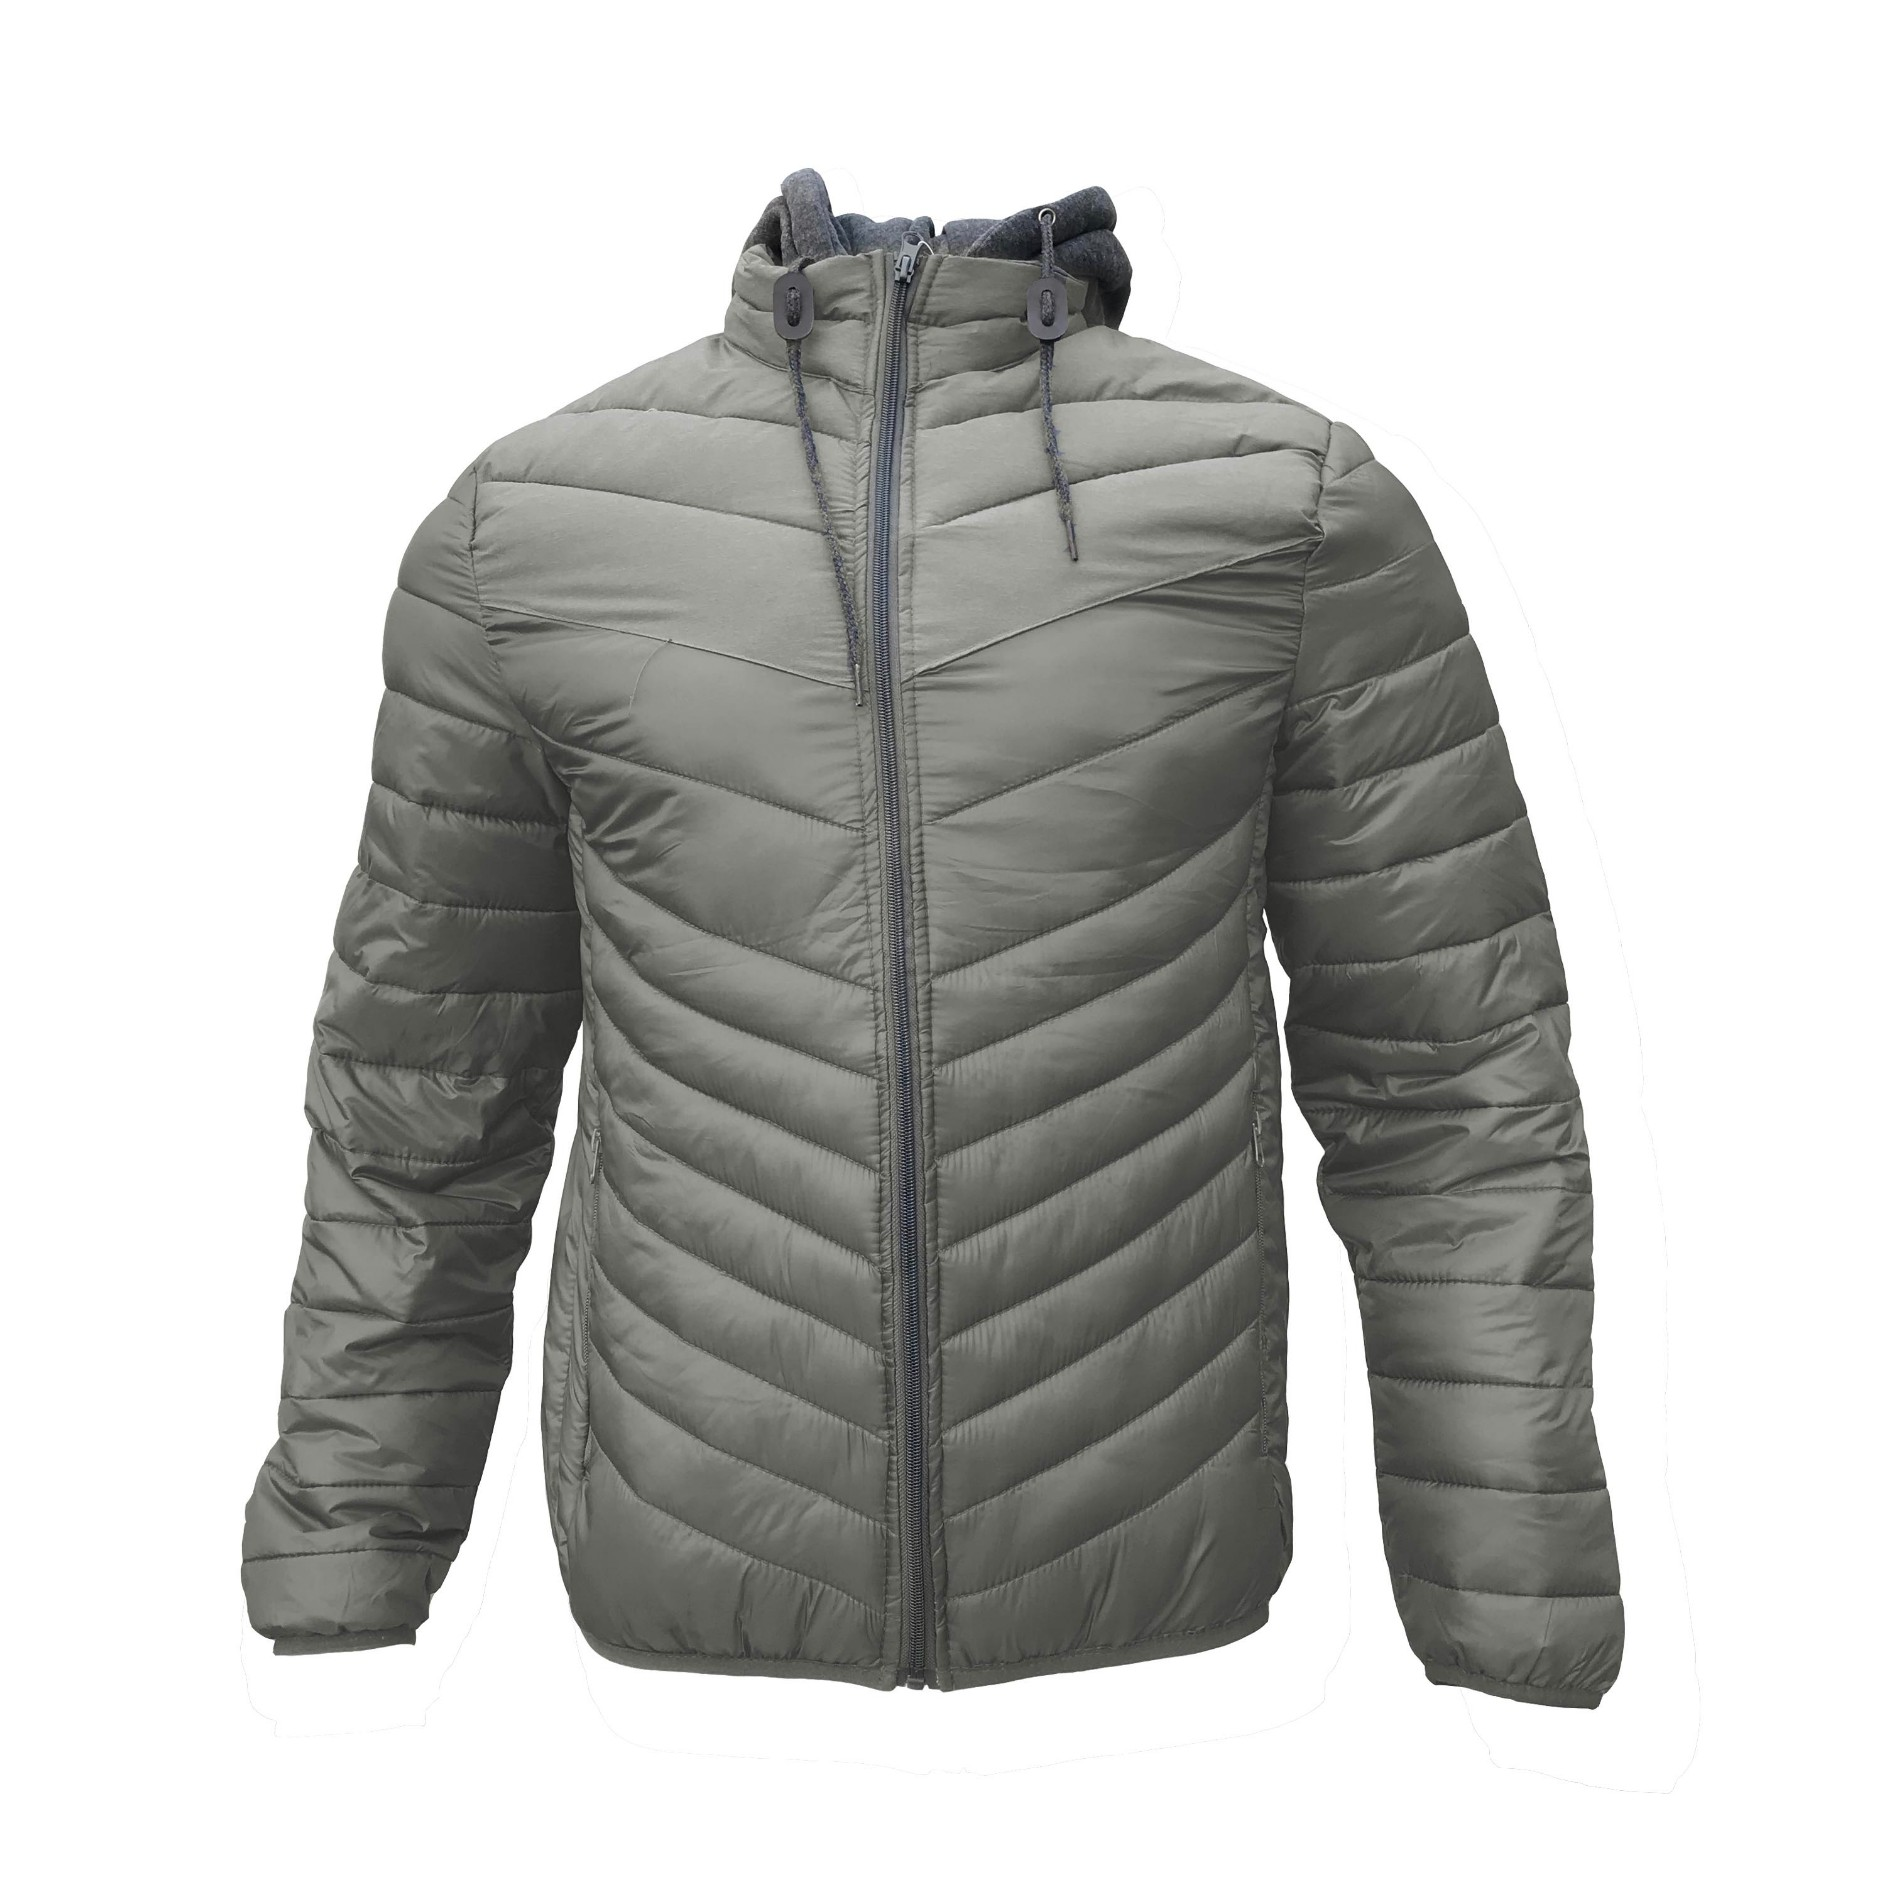 Men's Hooded Padding Jacket Winter Coat High Quality Padded Jackets Manufacturers, Men's Hooded Padding Jacket Winter Coat High Quality Padded Jackets Factory, Supply Men's Hooded Padding Jacket Winter Coat High Quality Padded Jackets